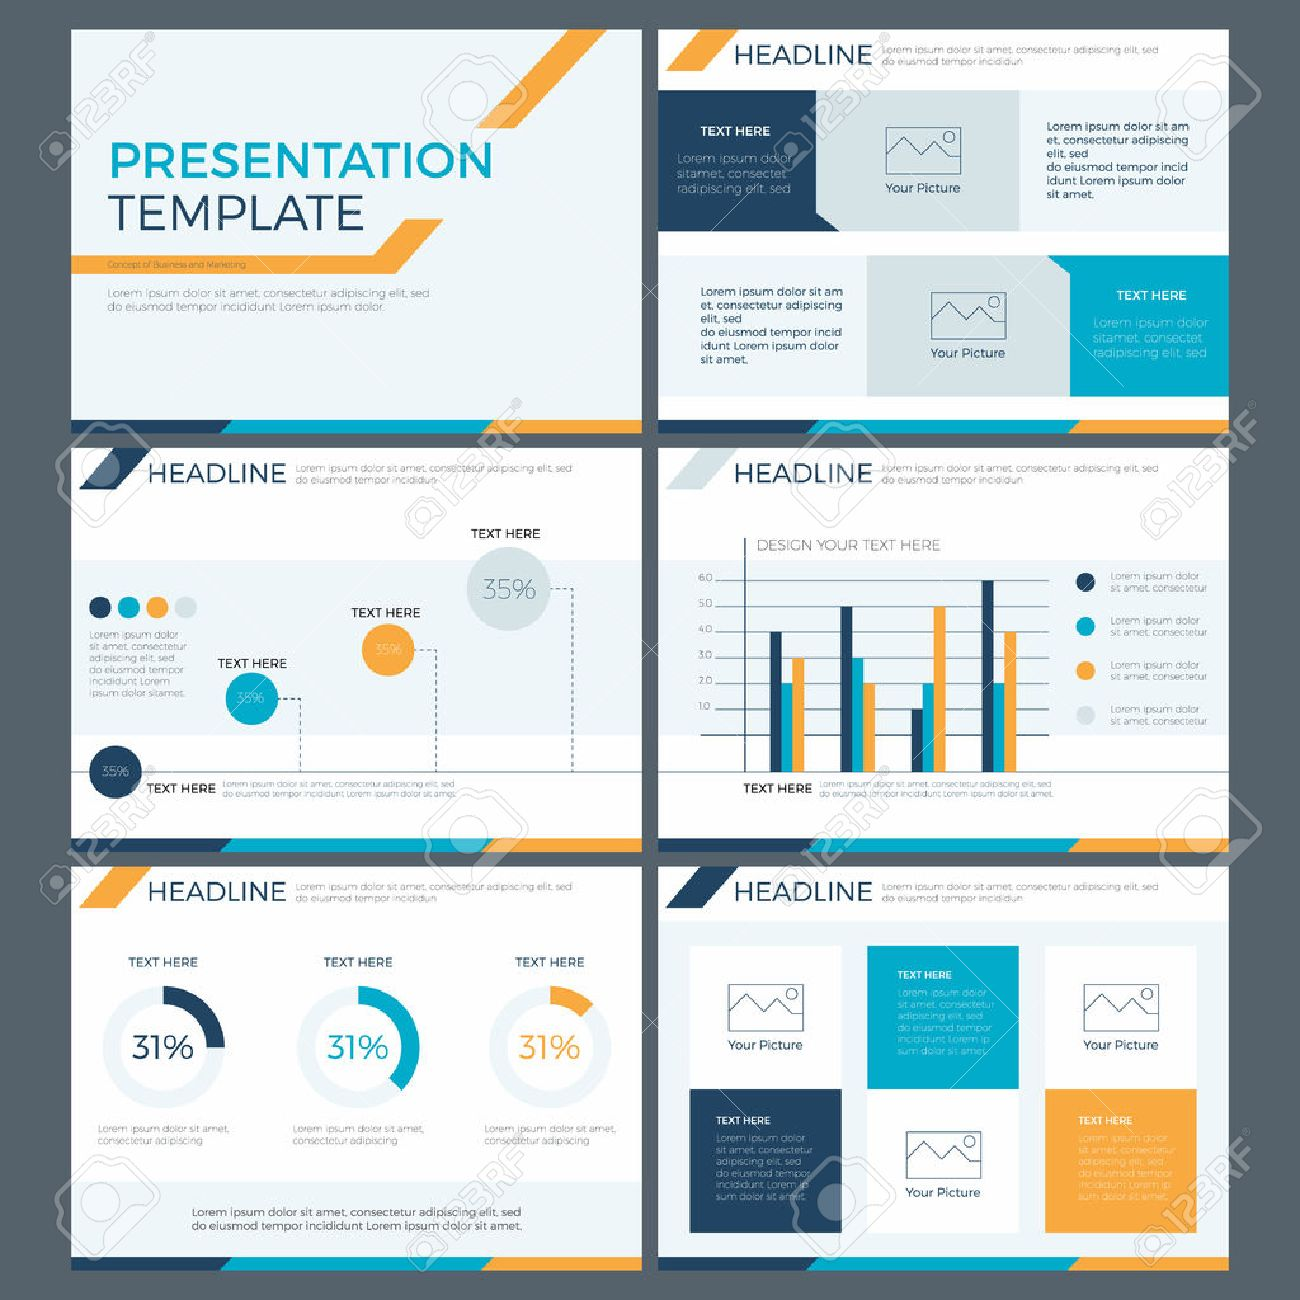 presentation template concept of business team work and marketing, Presentation templates